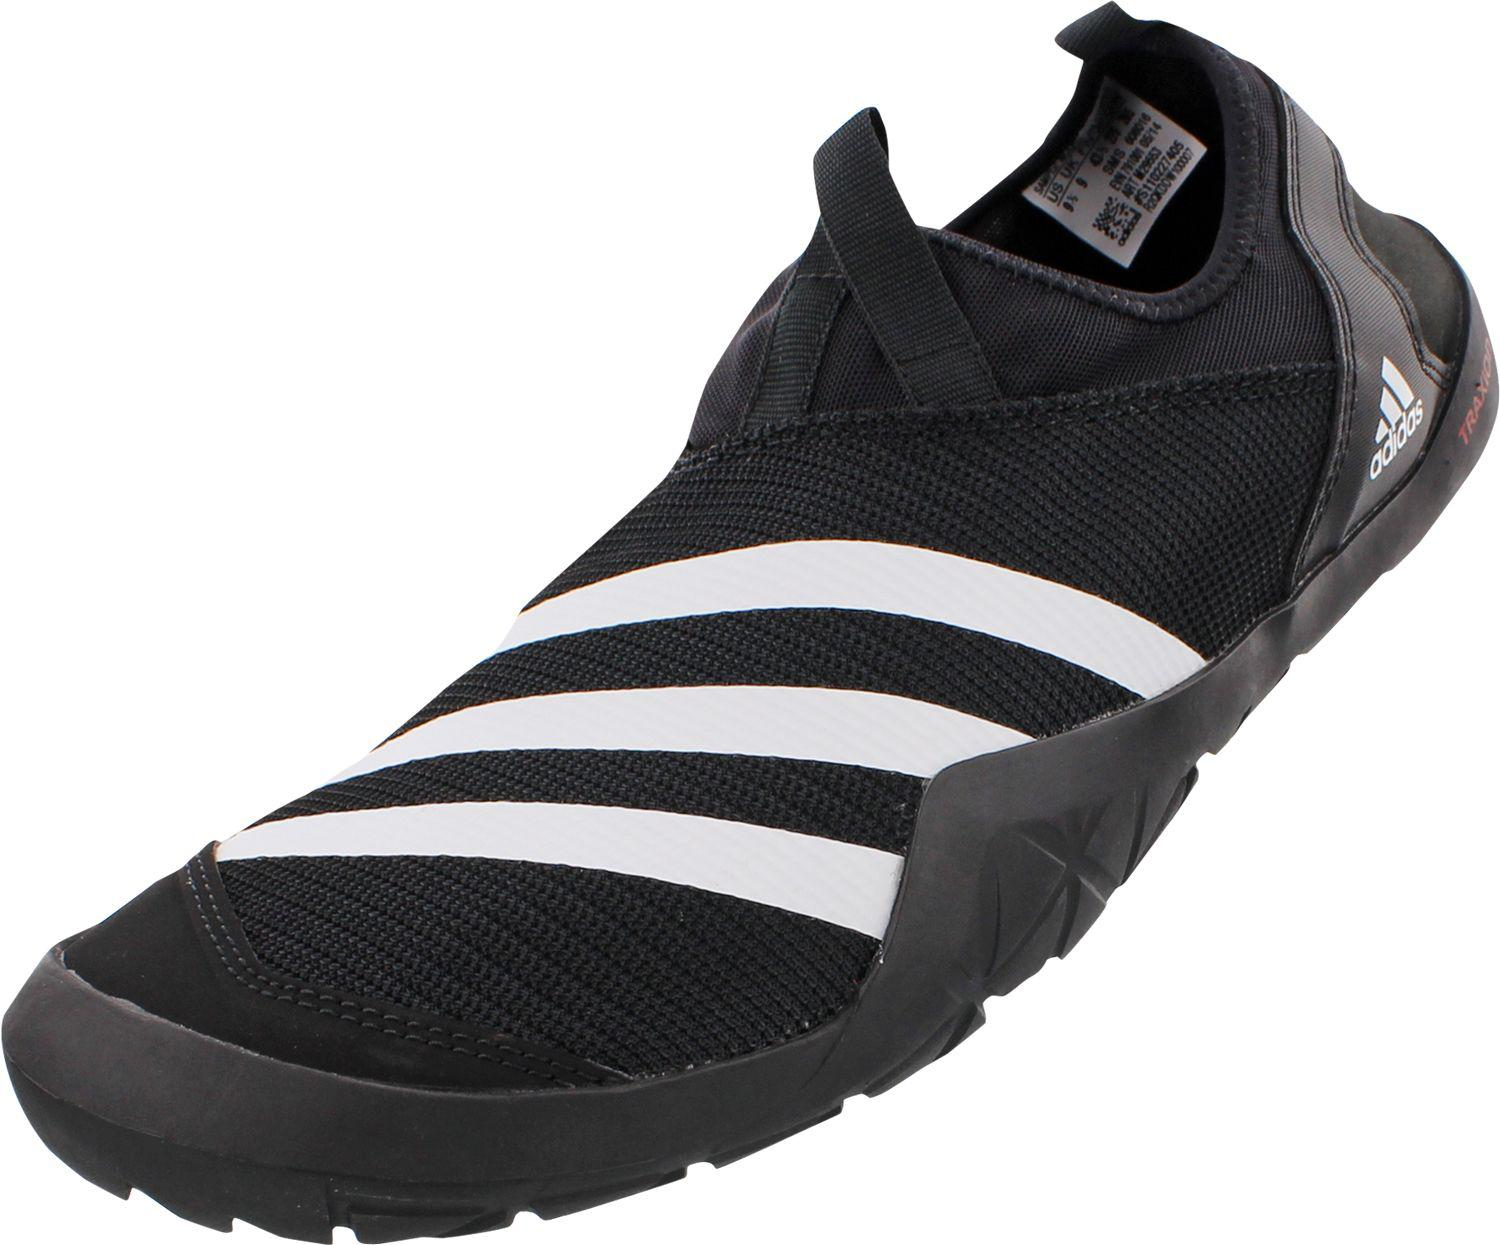 Outdoor Climacool Jawpaw Slip-on Water Shoes